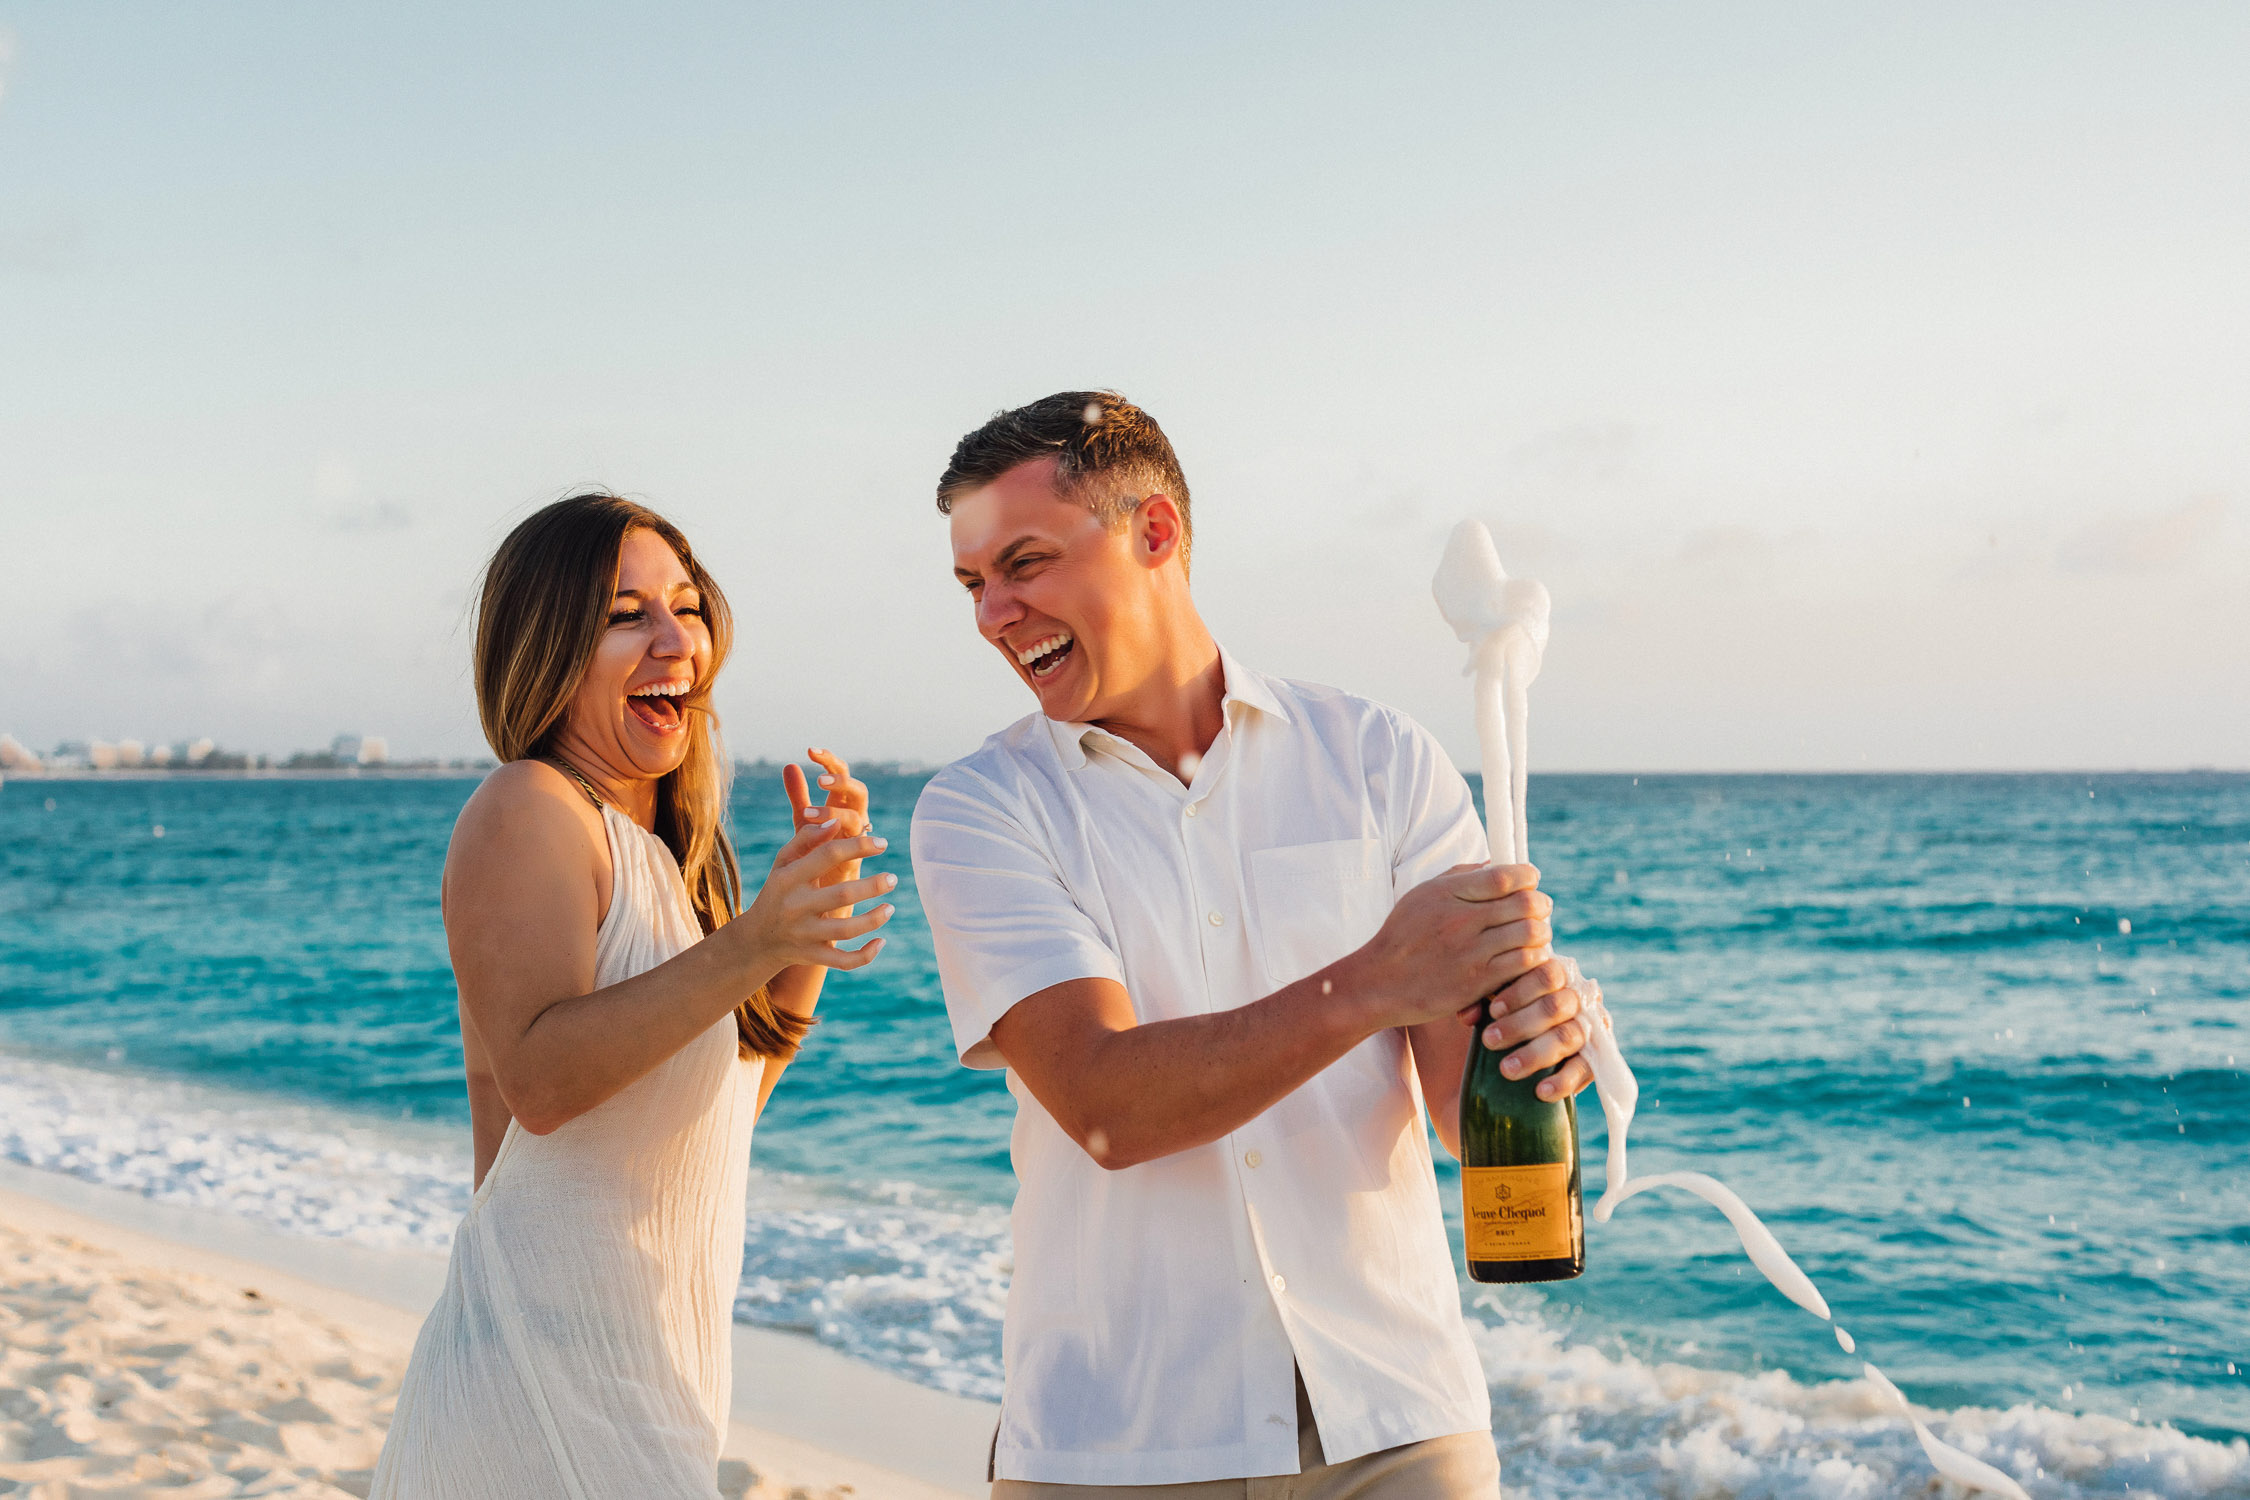 cayman islands beach engagement photo